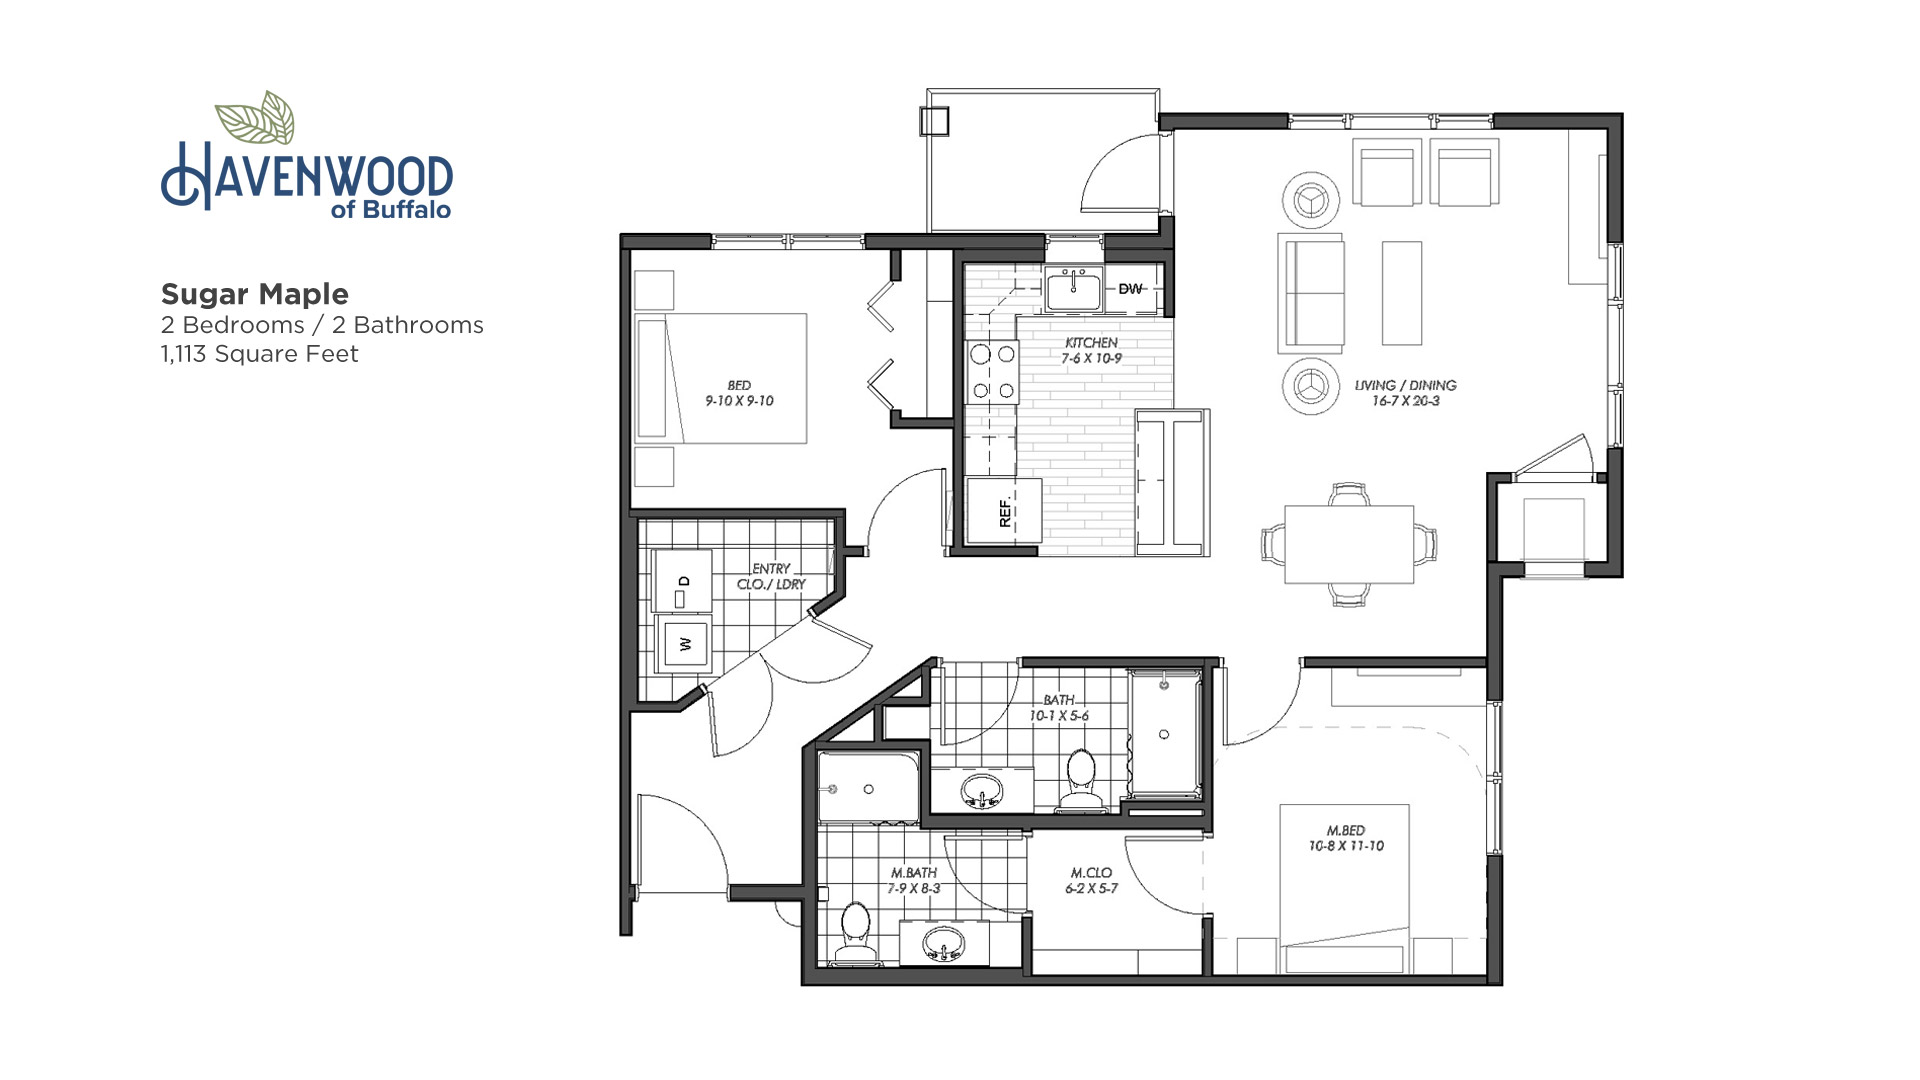 Havenwood of Buffalo Sugar Maple Floor Plan